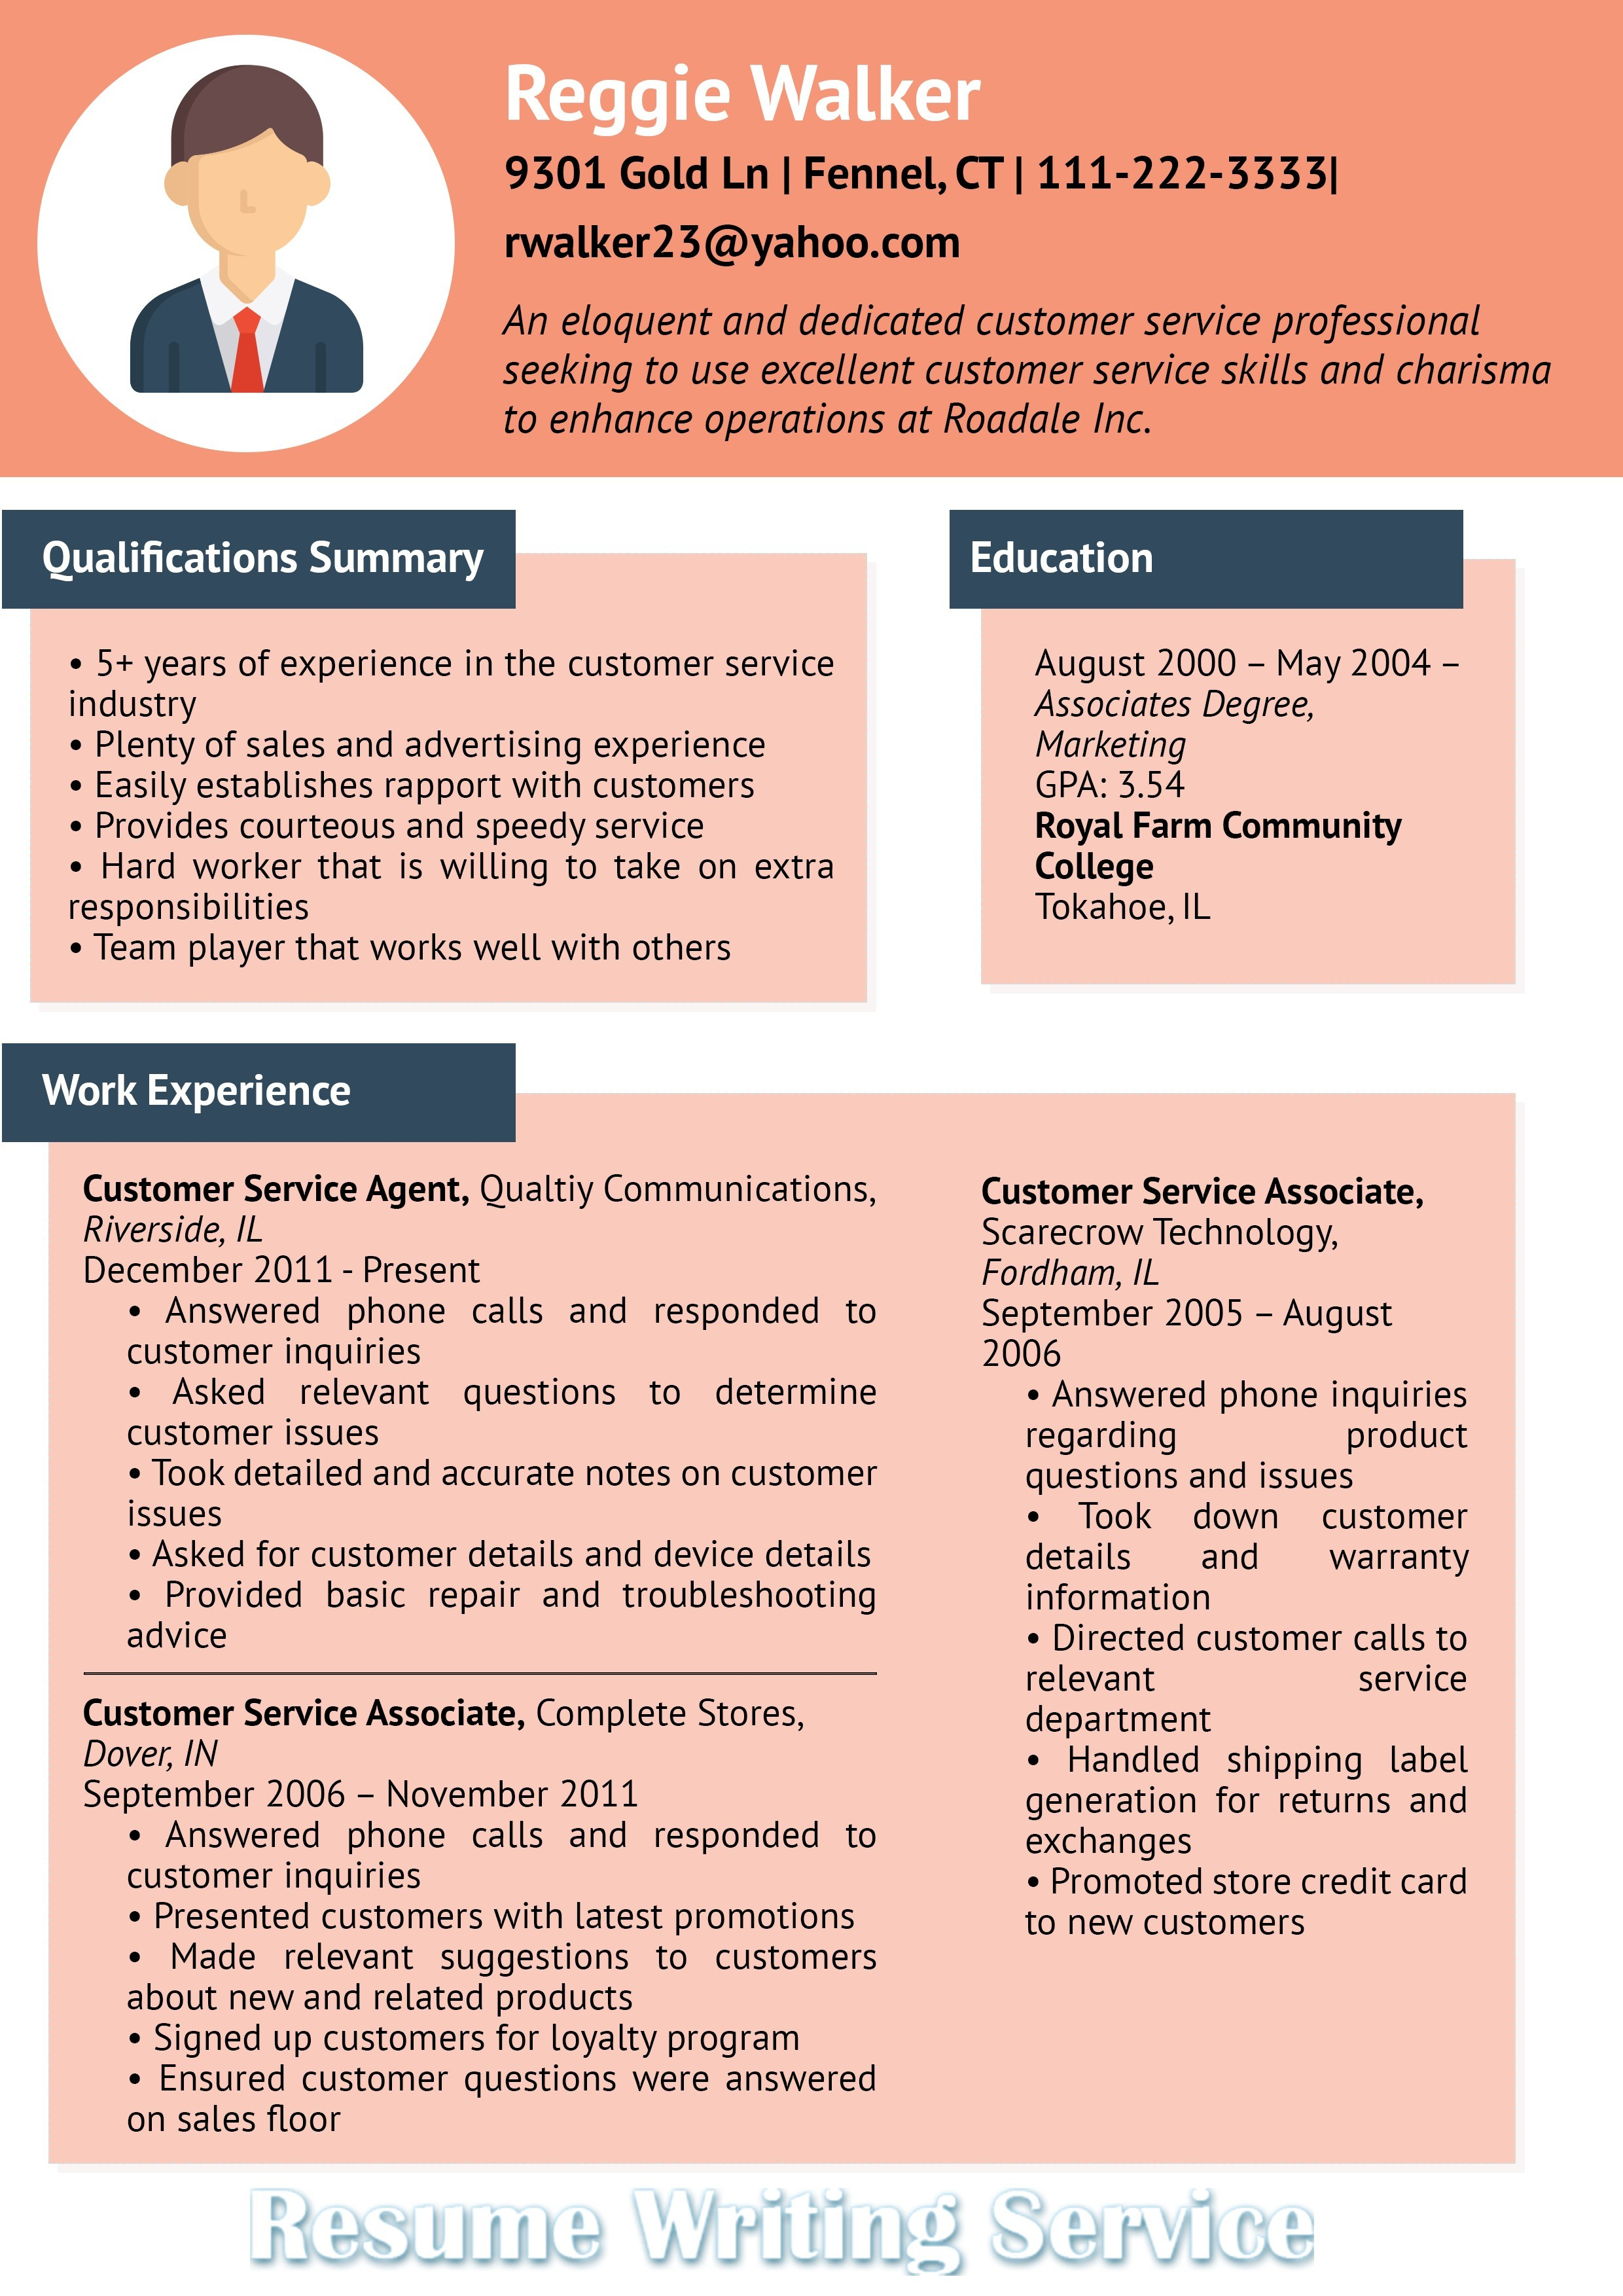 Service Industry Resume Template - Information Technology Entry Level Resume New Pharmacy Tech Resume